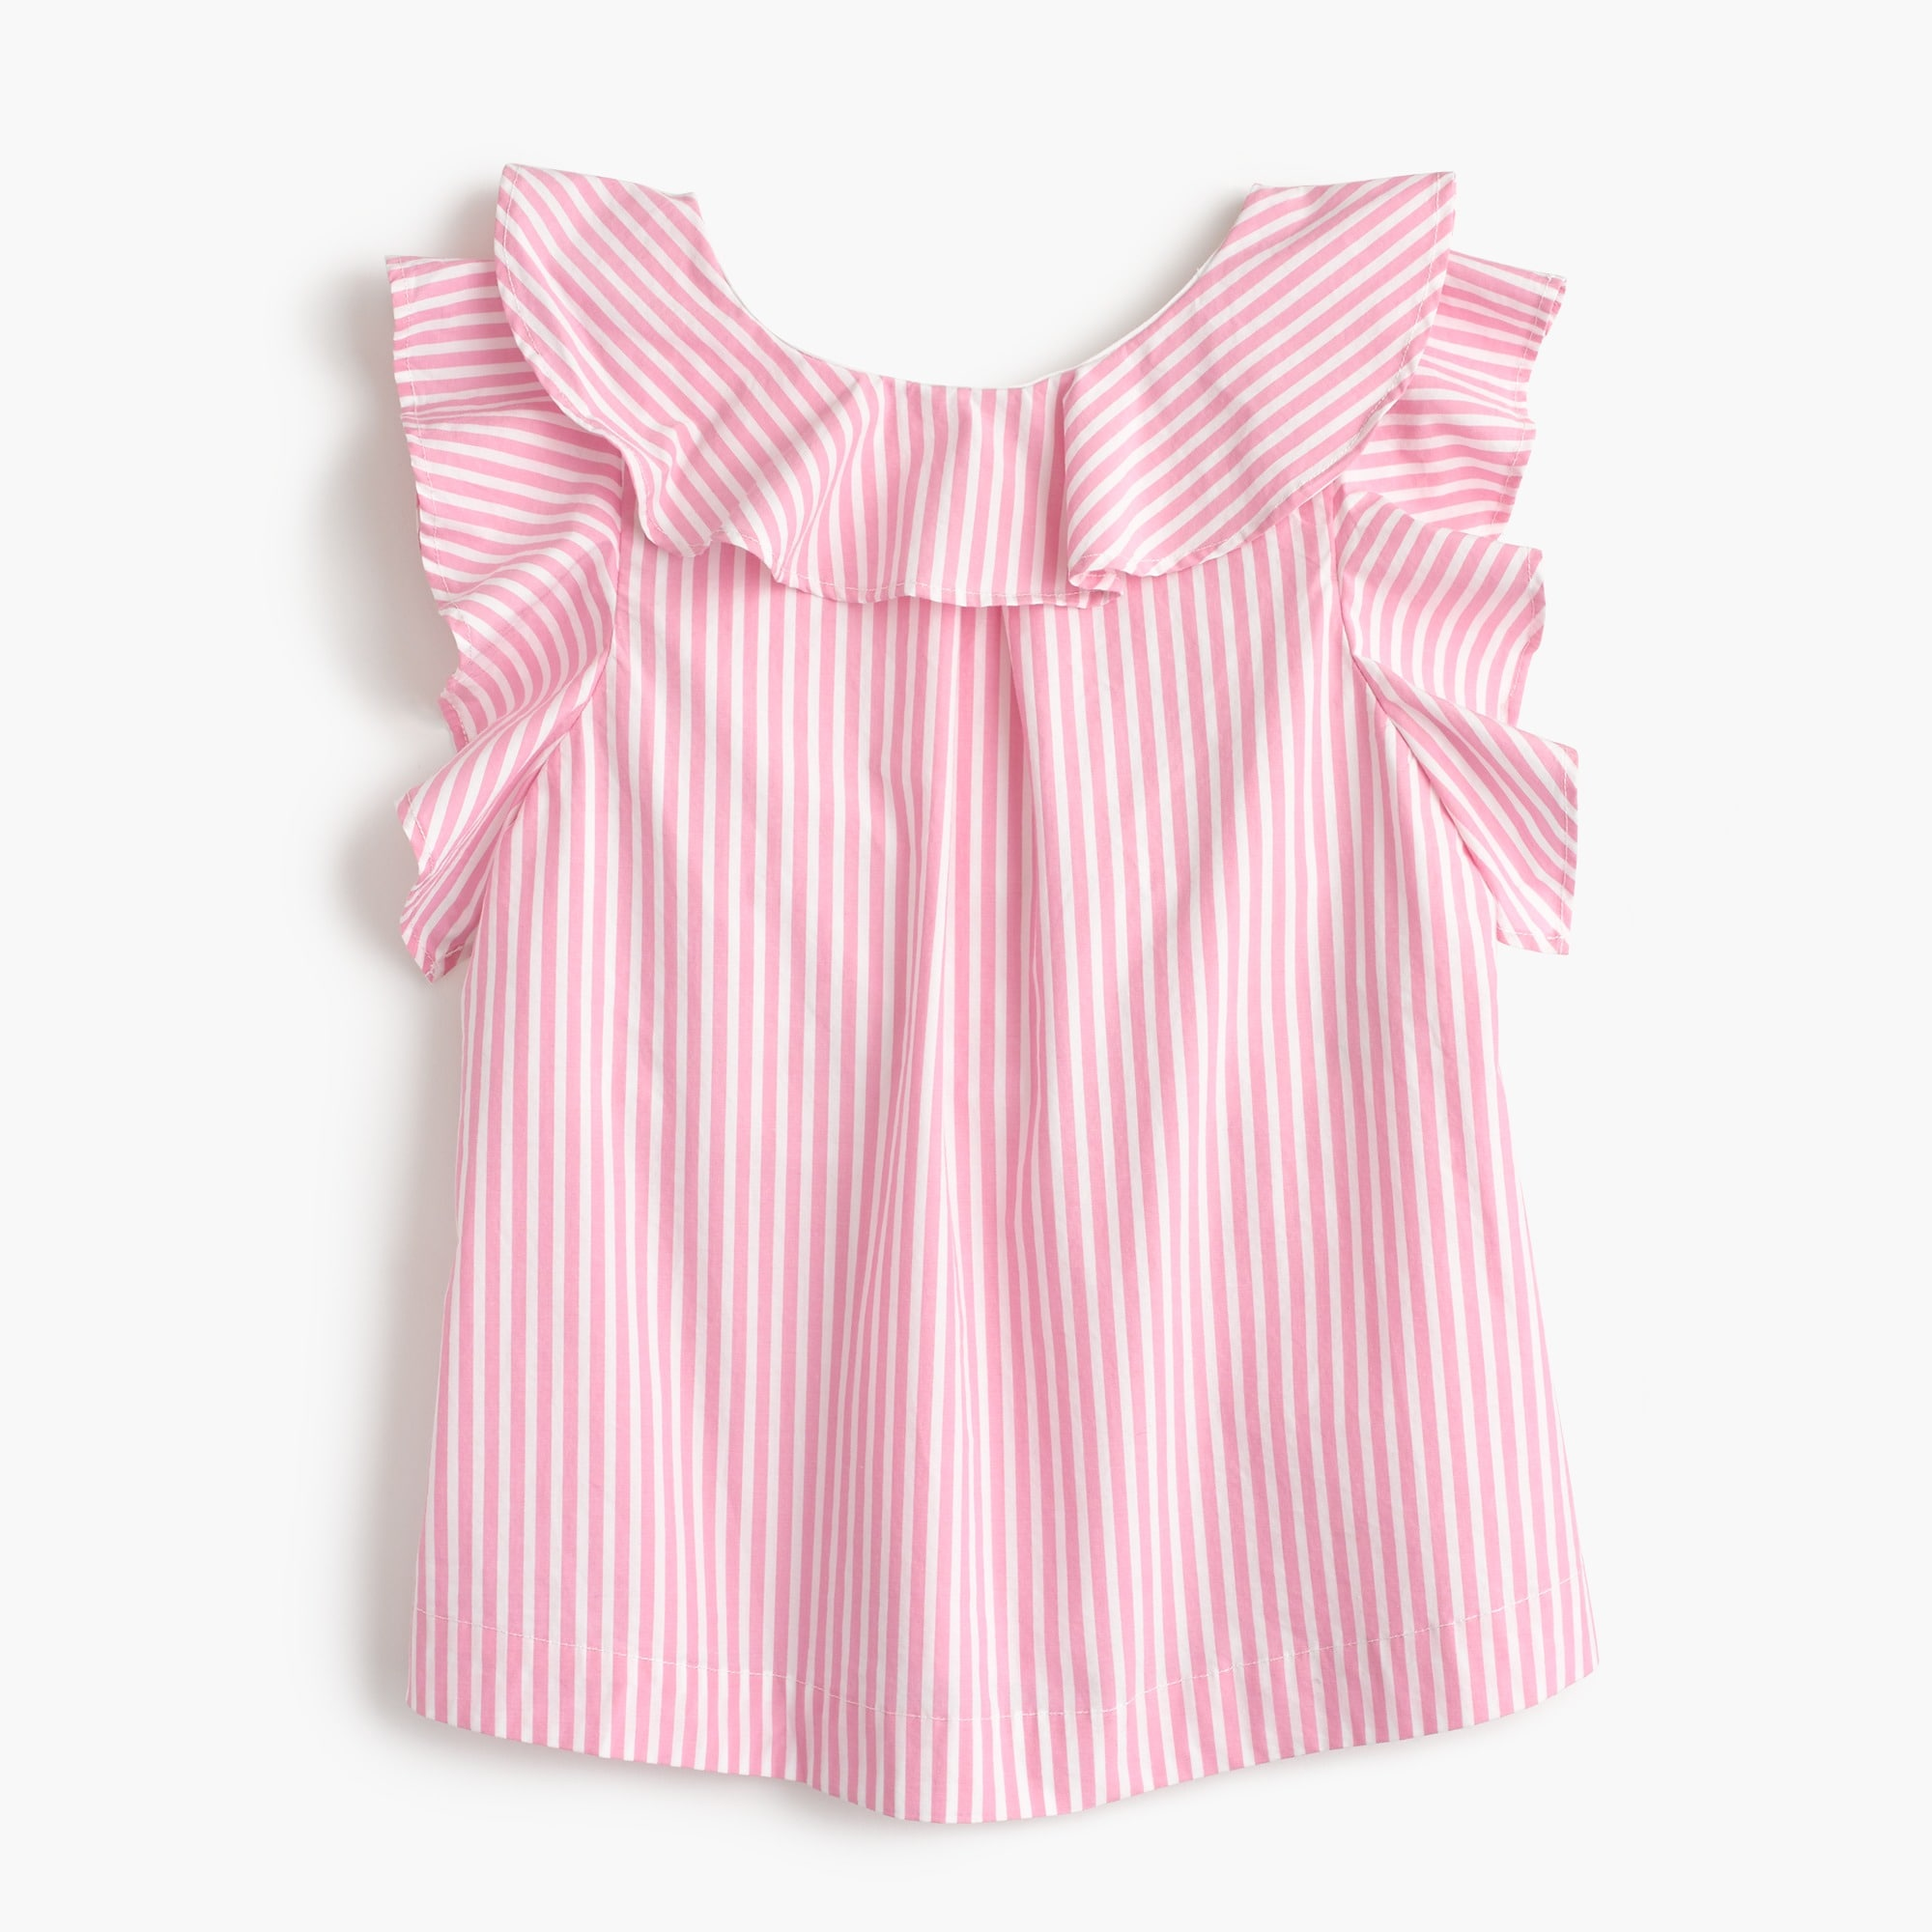 girls' ruffle top in pink stripe : girls' sleeveless shirts